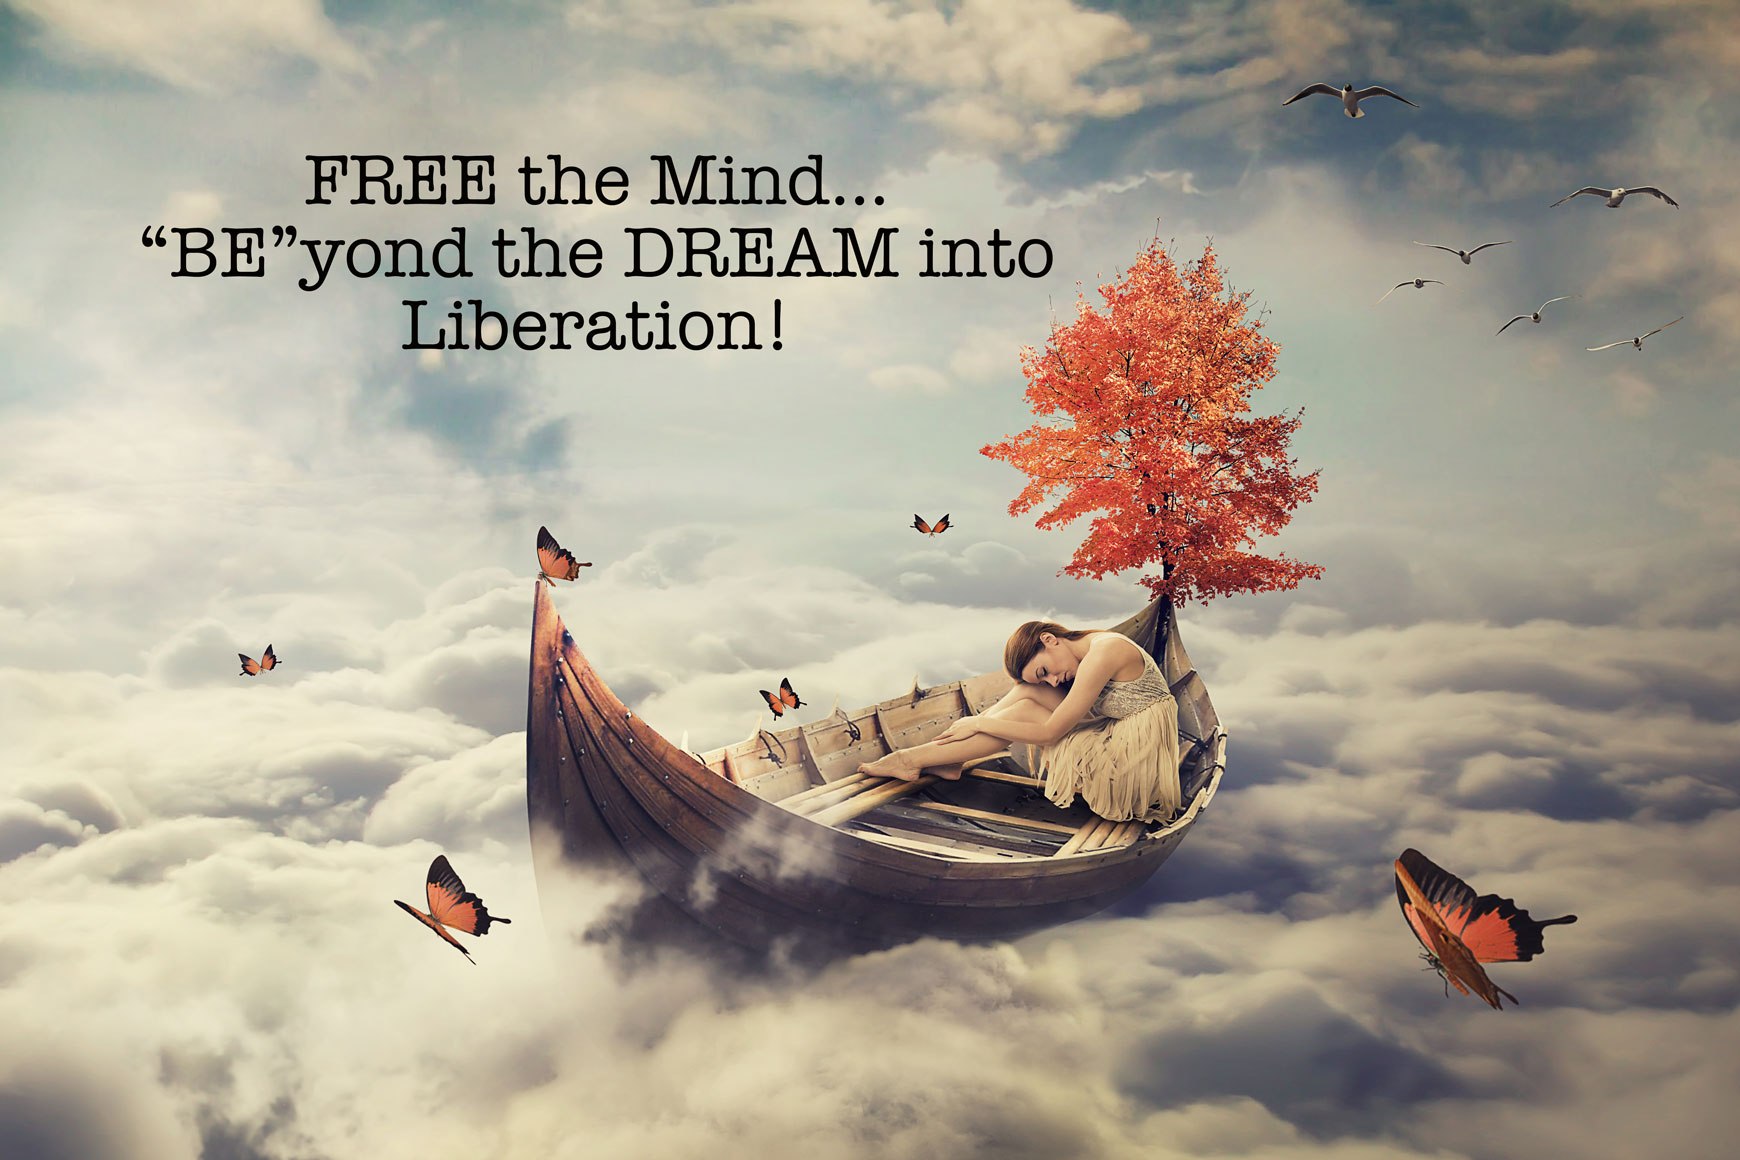 BeSimply...Free the Mind {Dream}